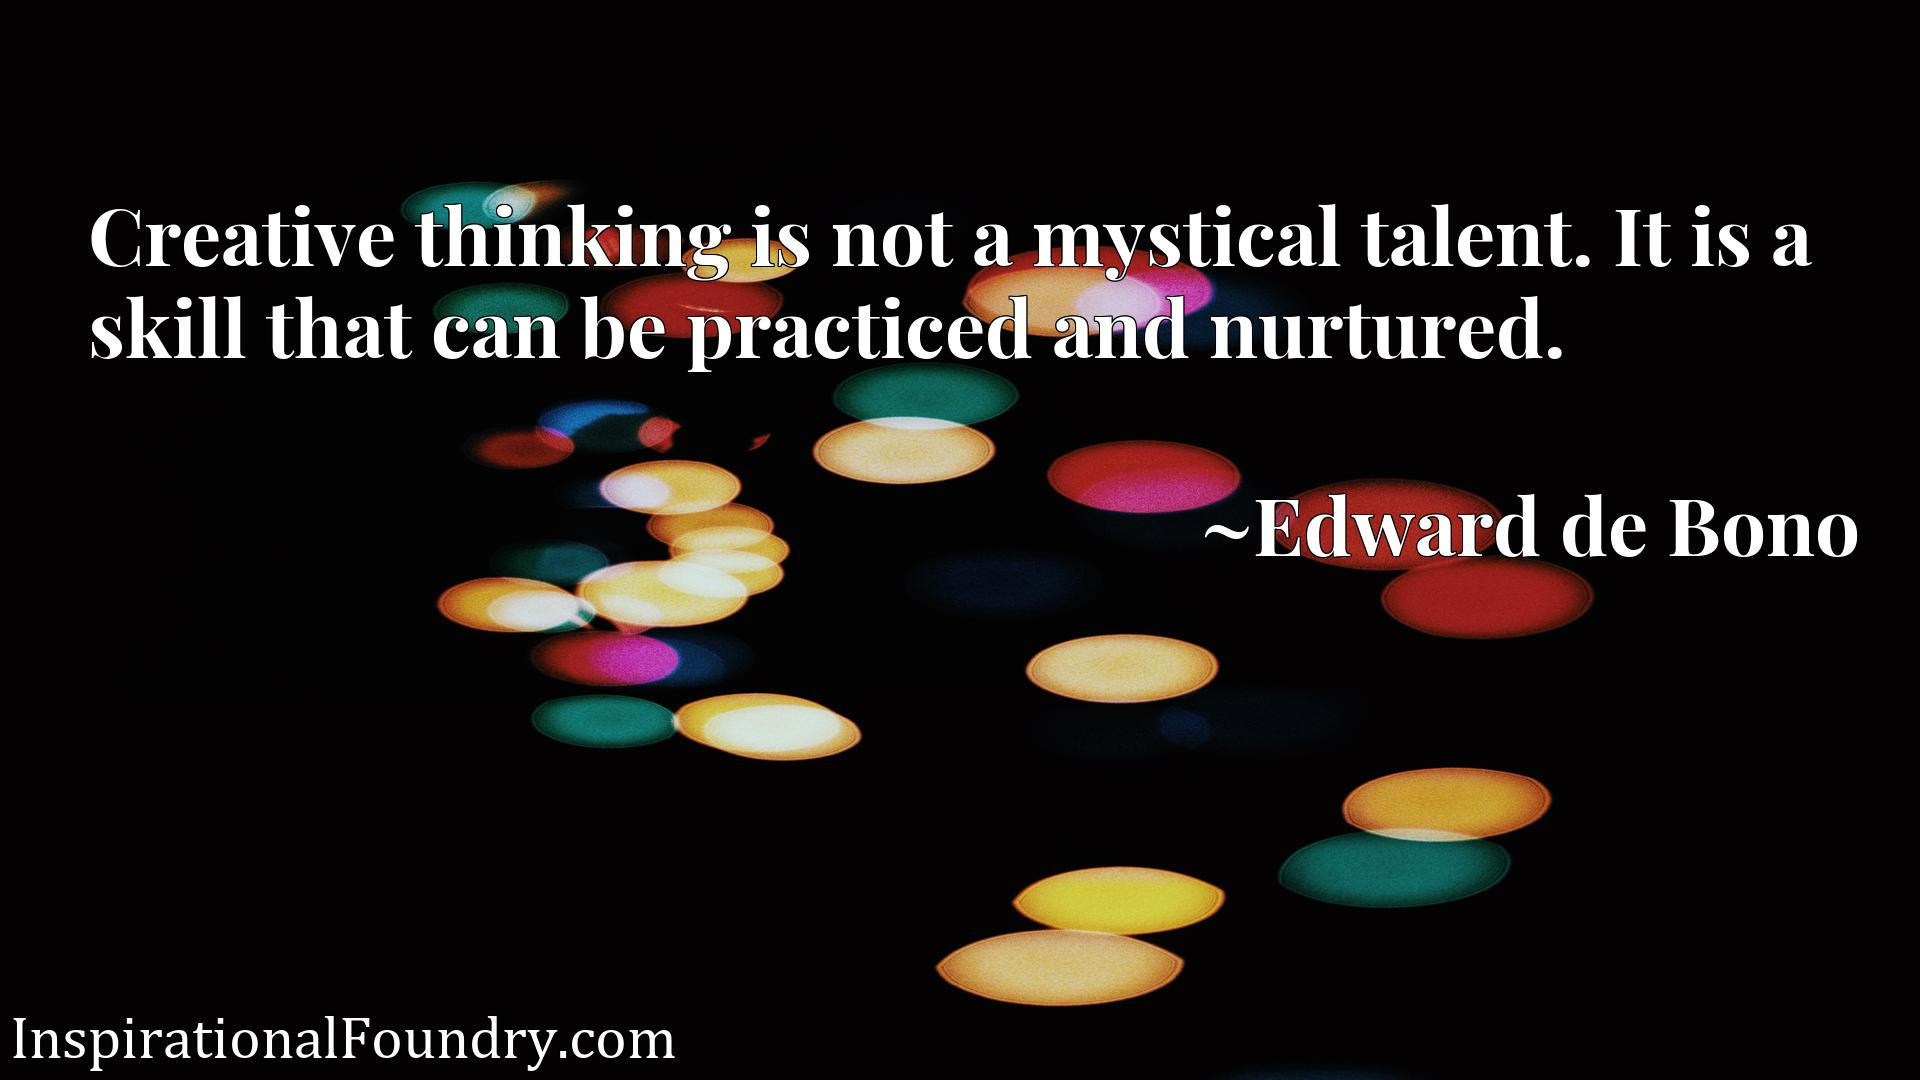 Creative thinking is not a mystical talent. It is a skill that can be practiced and nurtured.